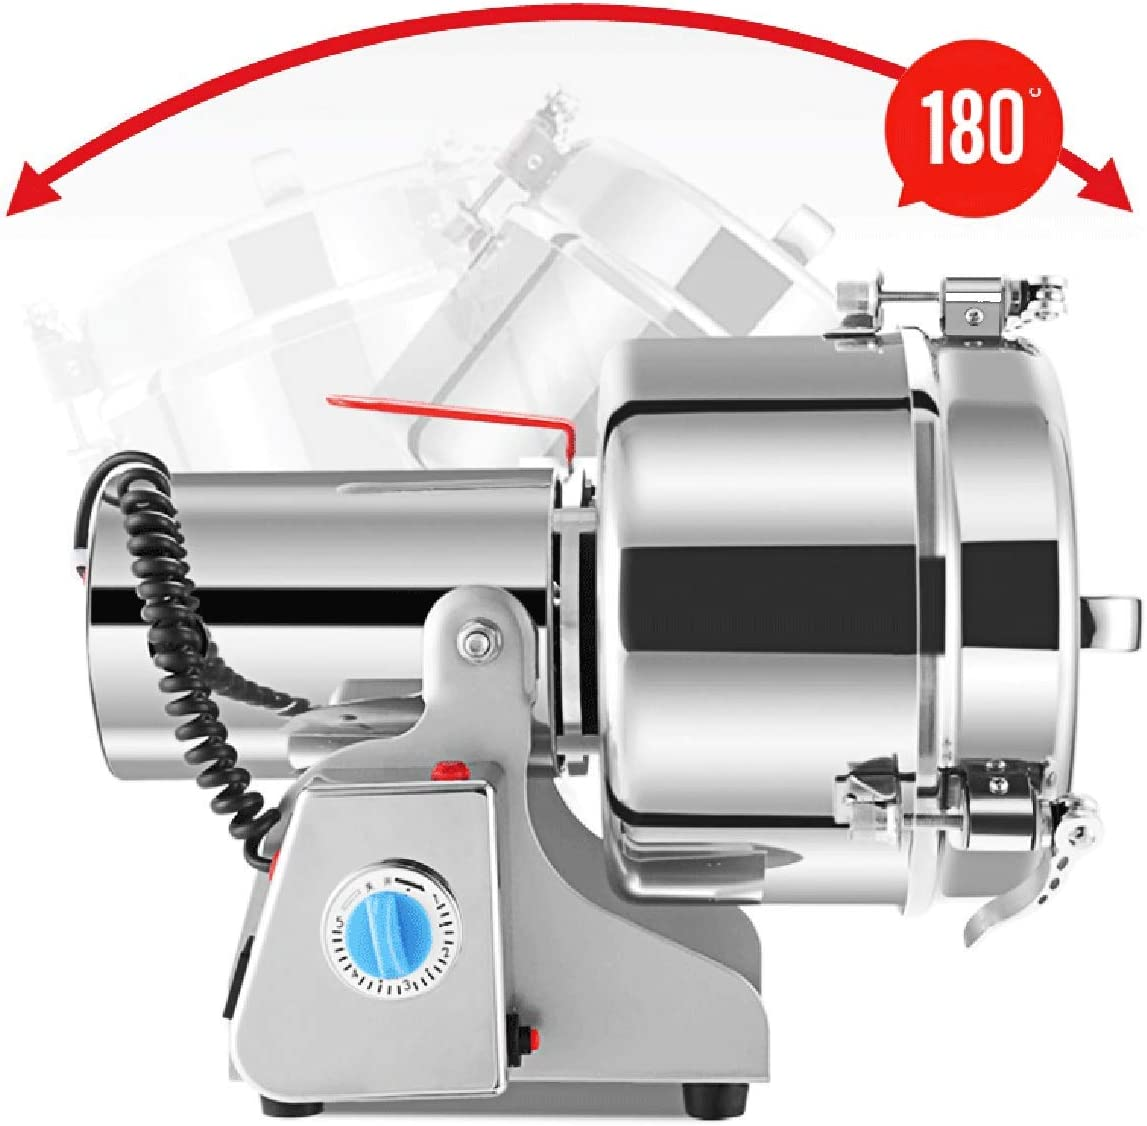 New RRH 500G Swing Type Grain Mill Electric Spice Nut and Coffee Grinder High Speed 25000 RPM Stainless Steel Mill Grinder 2300W Powder Machine 50-300 Mesh, for Herbs Corn Sesame Soybean Pepper Bait Feed